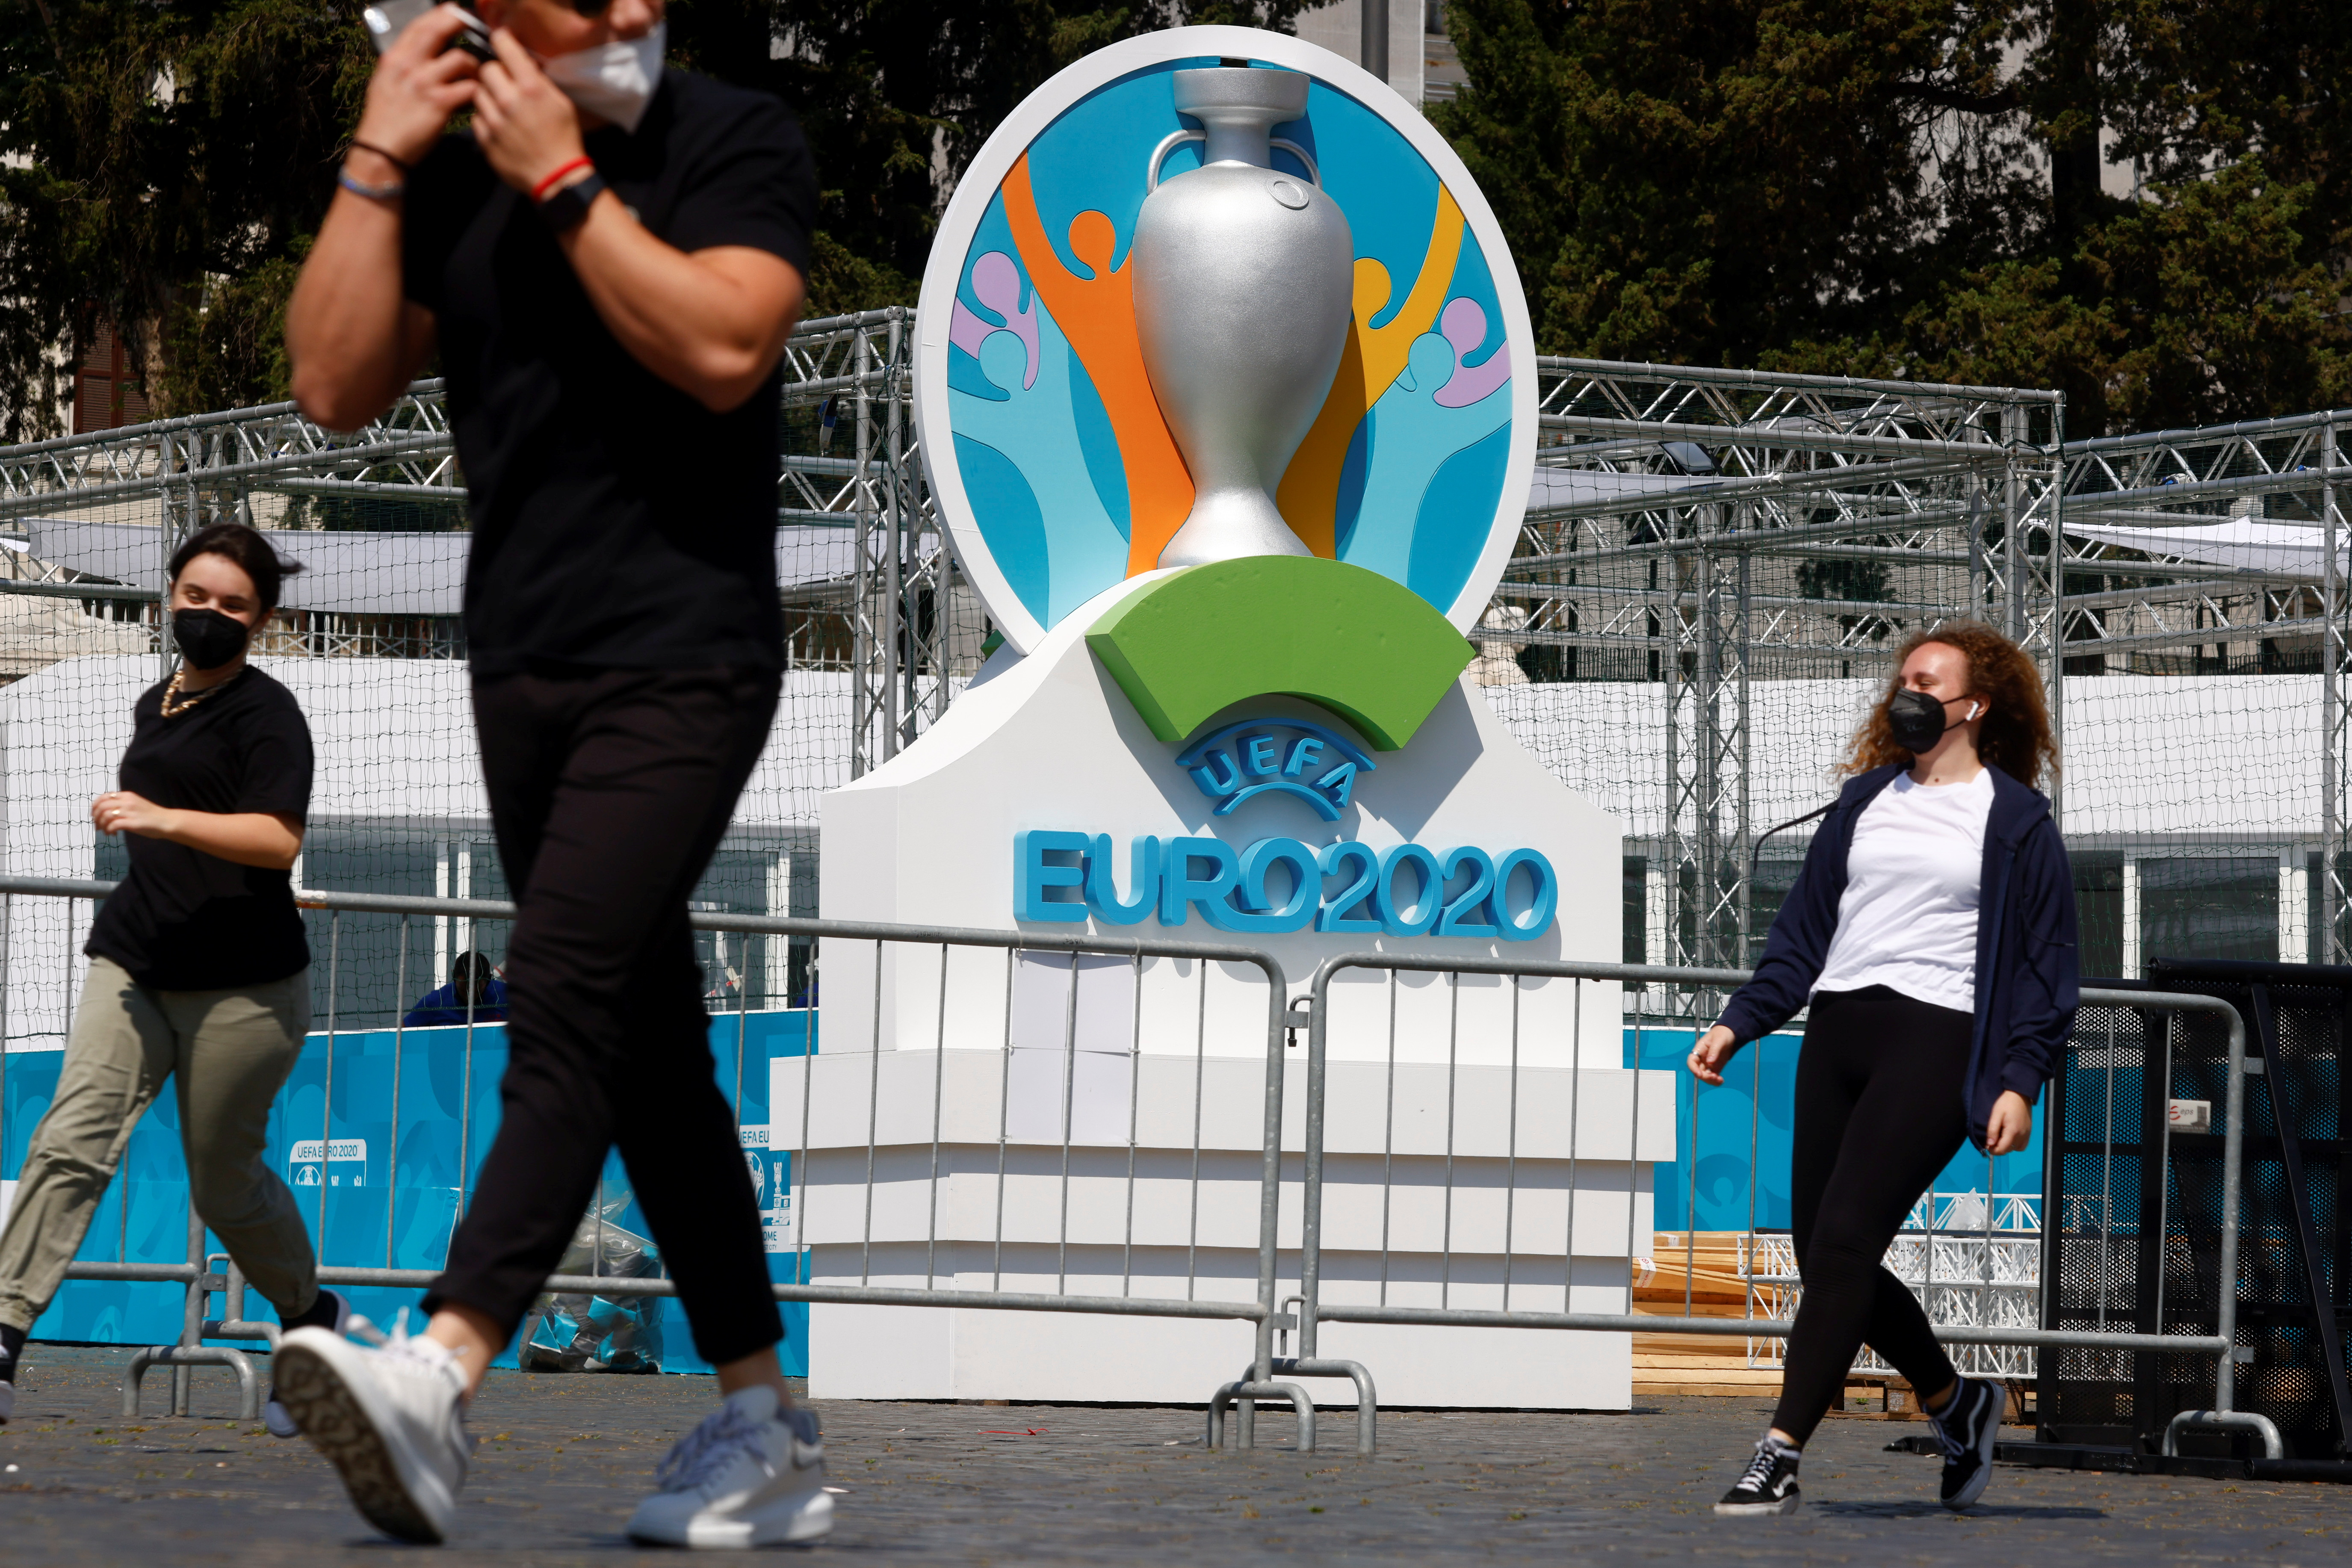 People wearing protective masks walk past the logo of UEFA Euro 2020 at the fan zone at Piazza del Popolo in Rome, Italy, June 7, 2021. REUTERS/Guglielmo Mangiapane